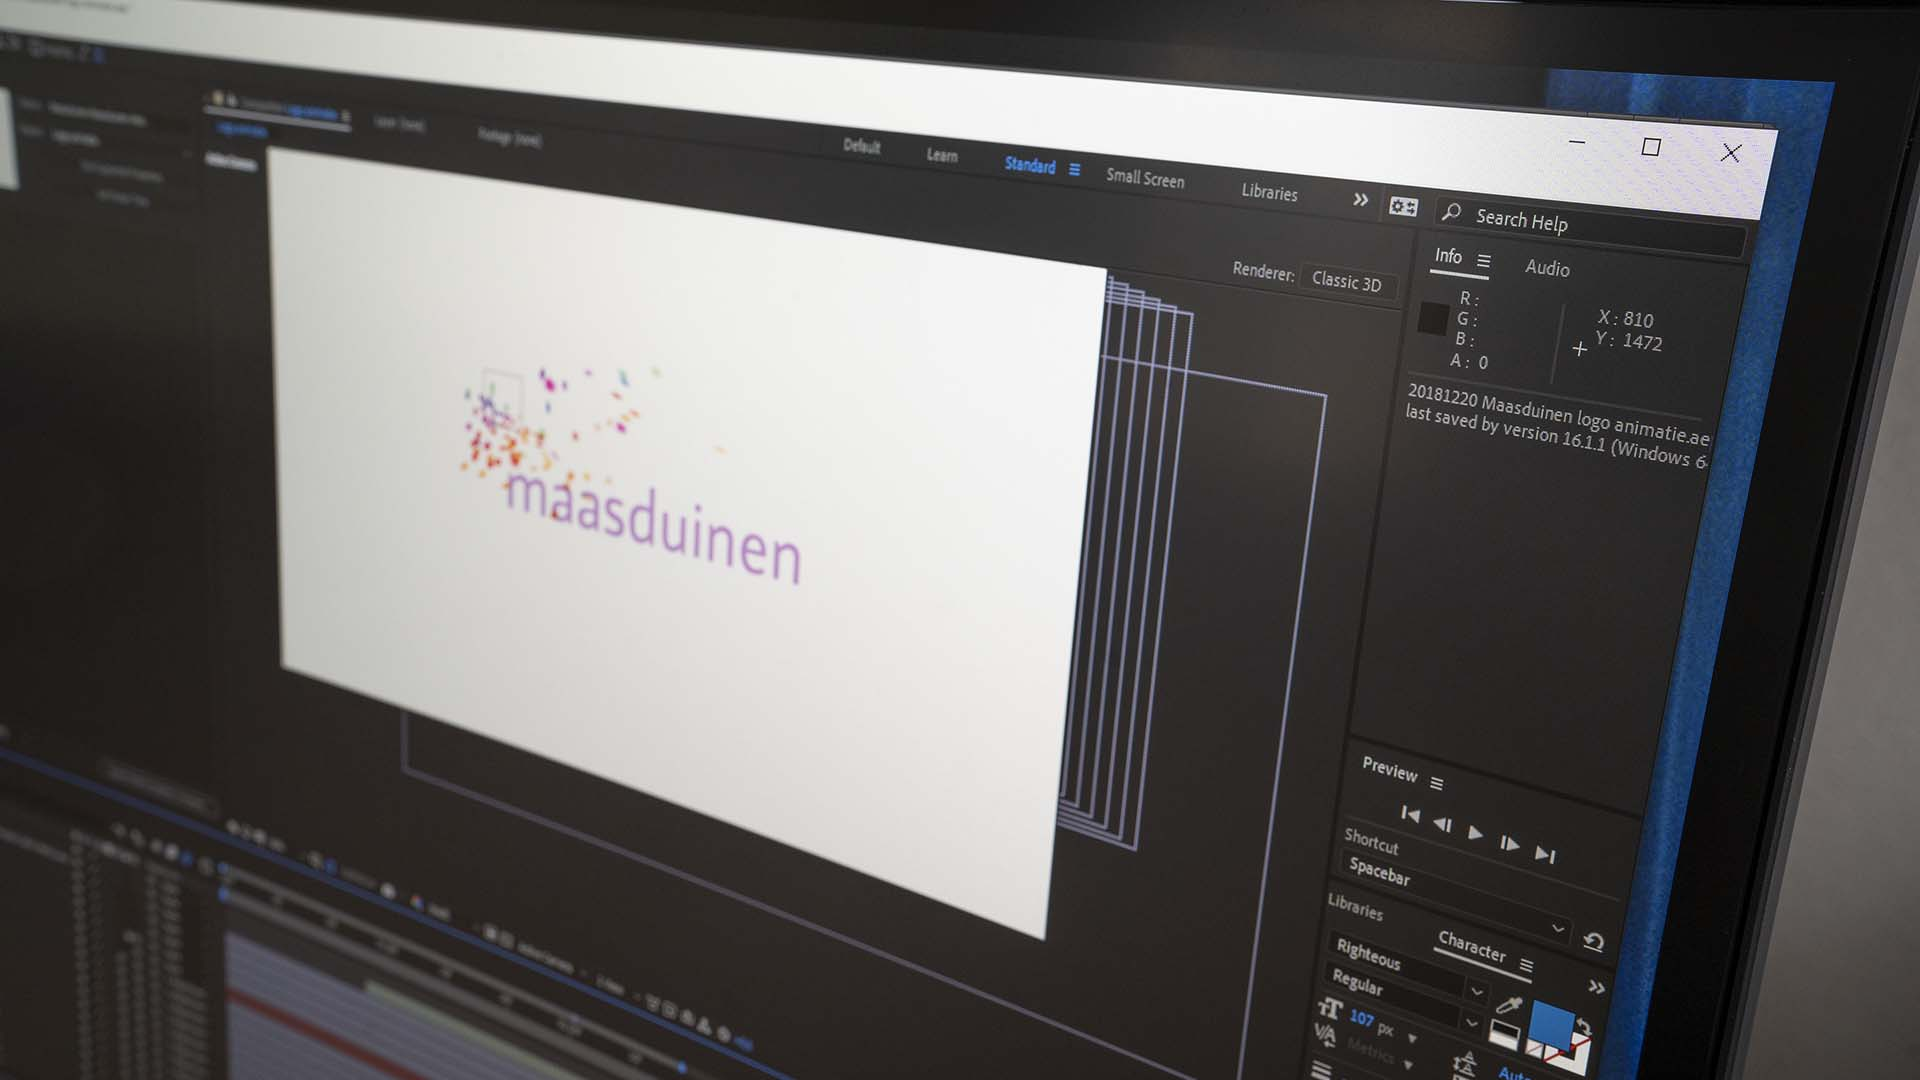 Animatie logo after effects Zinst